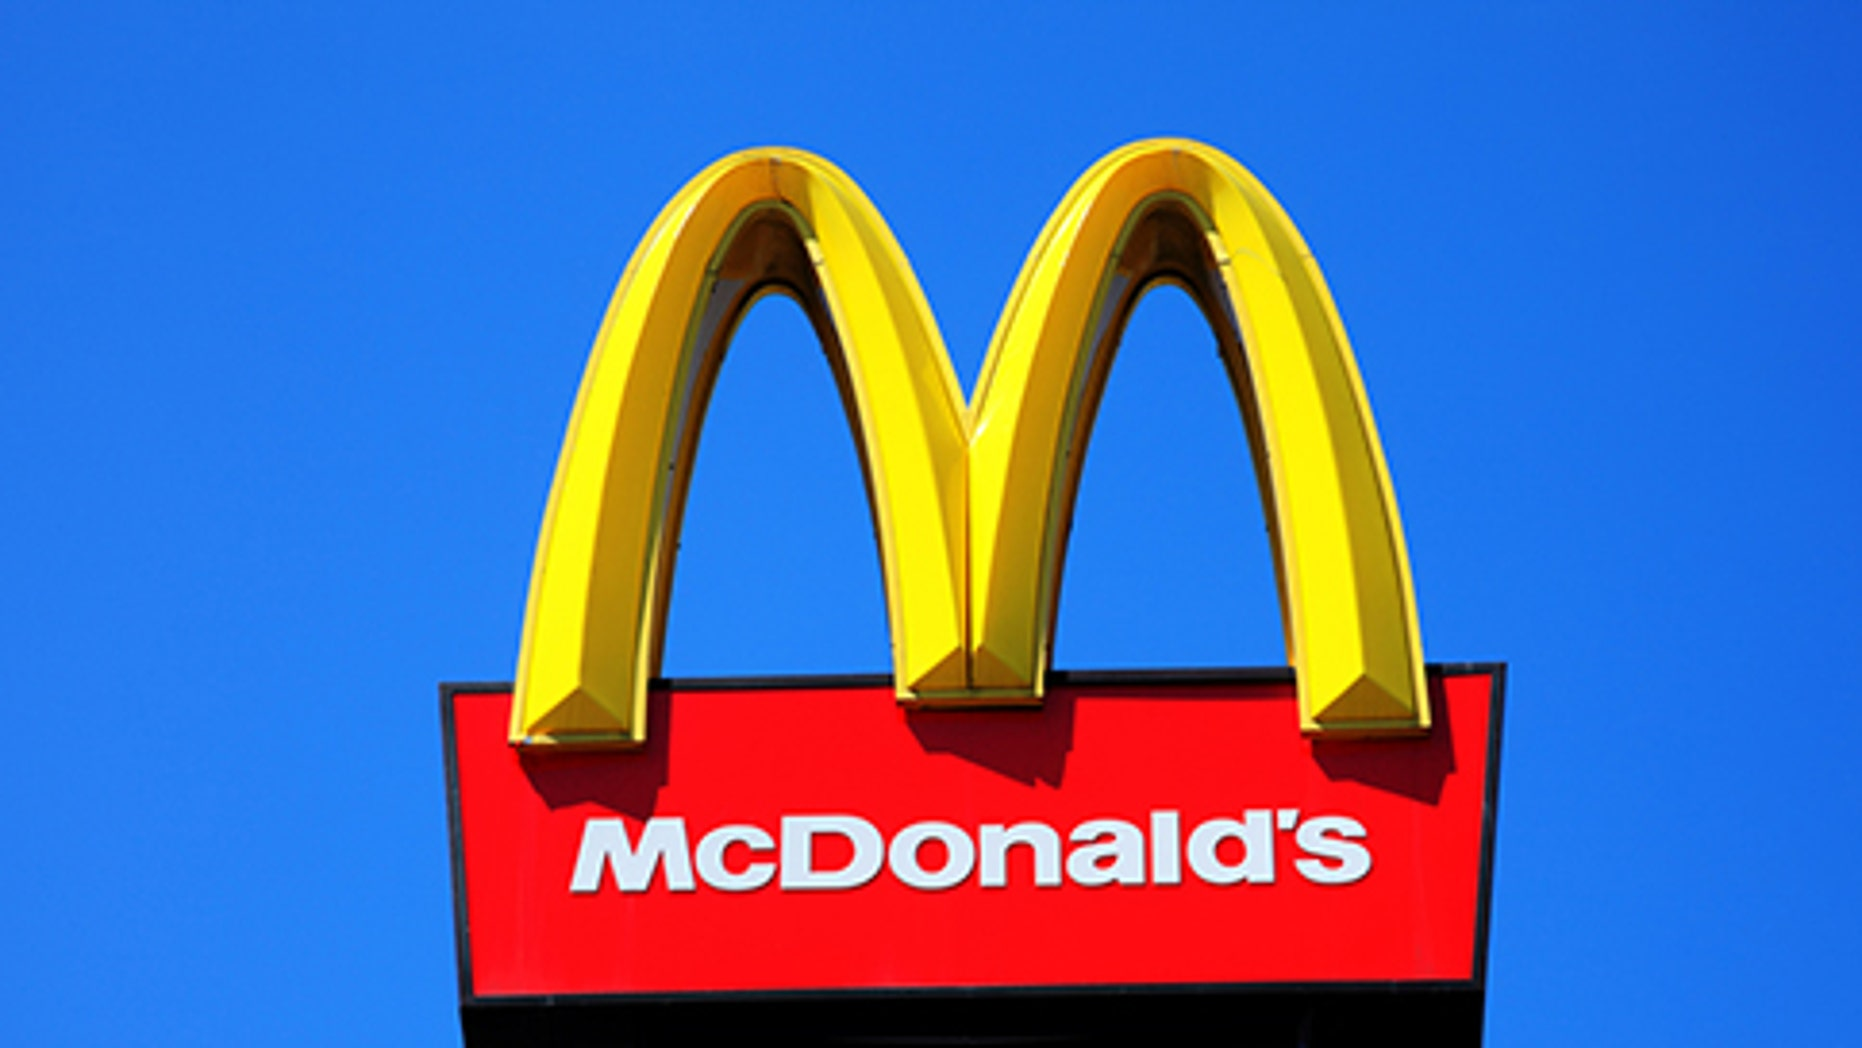 McDonald's employee allegedly sold thousands of dollars of cocaine to undercover police officers.